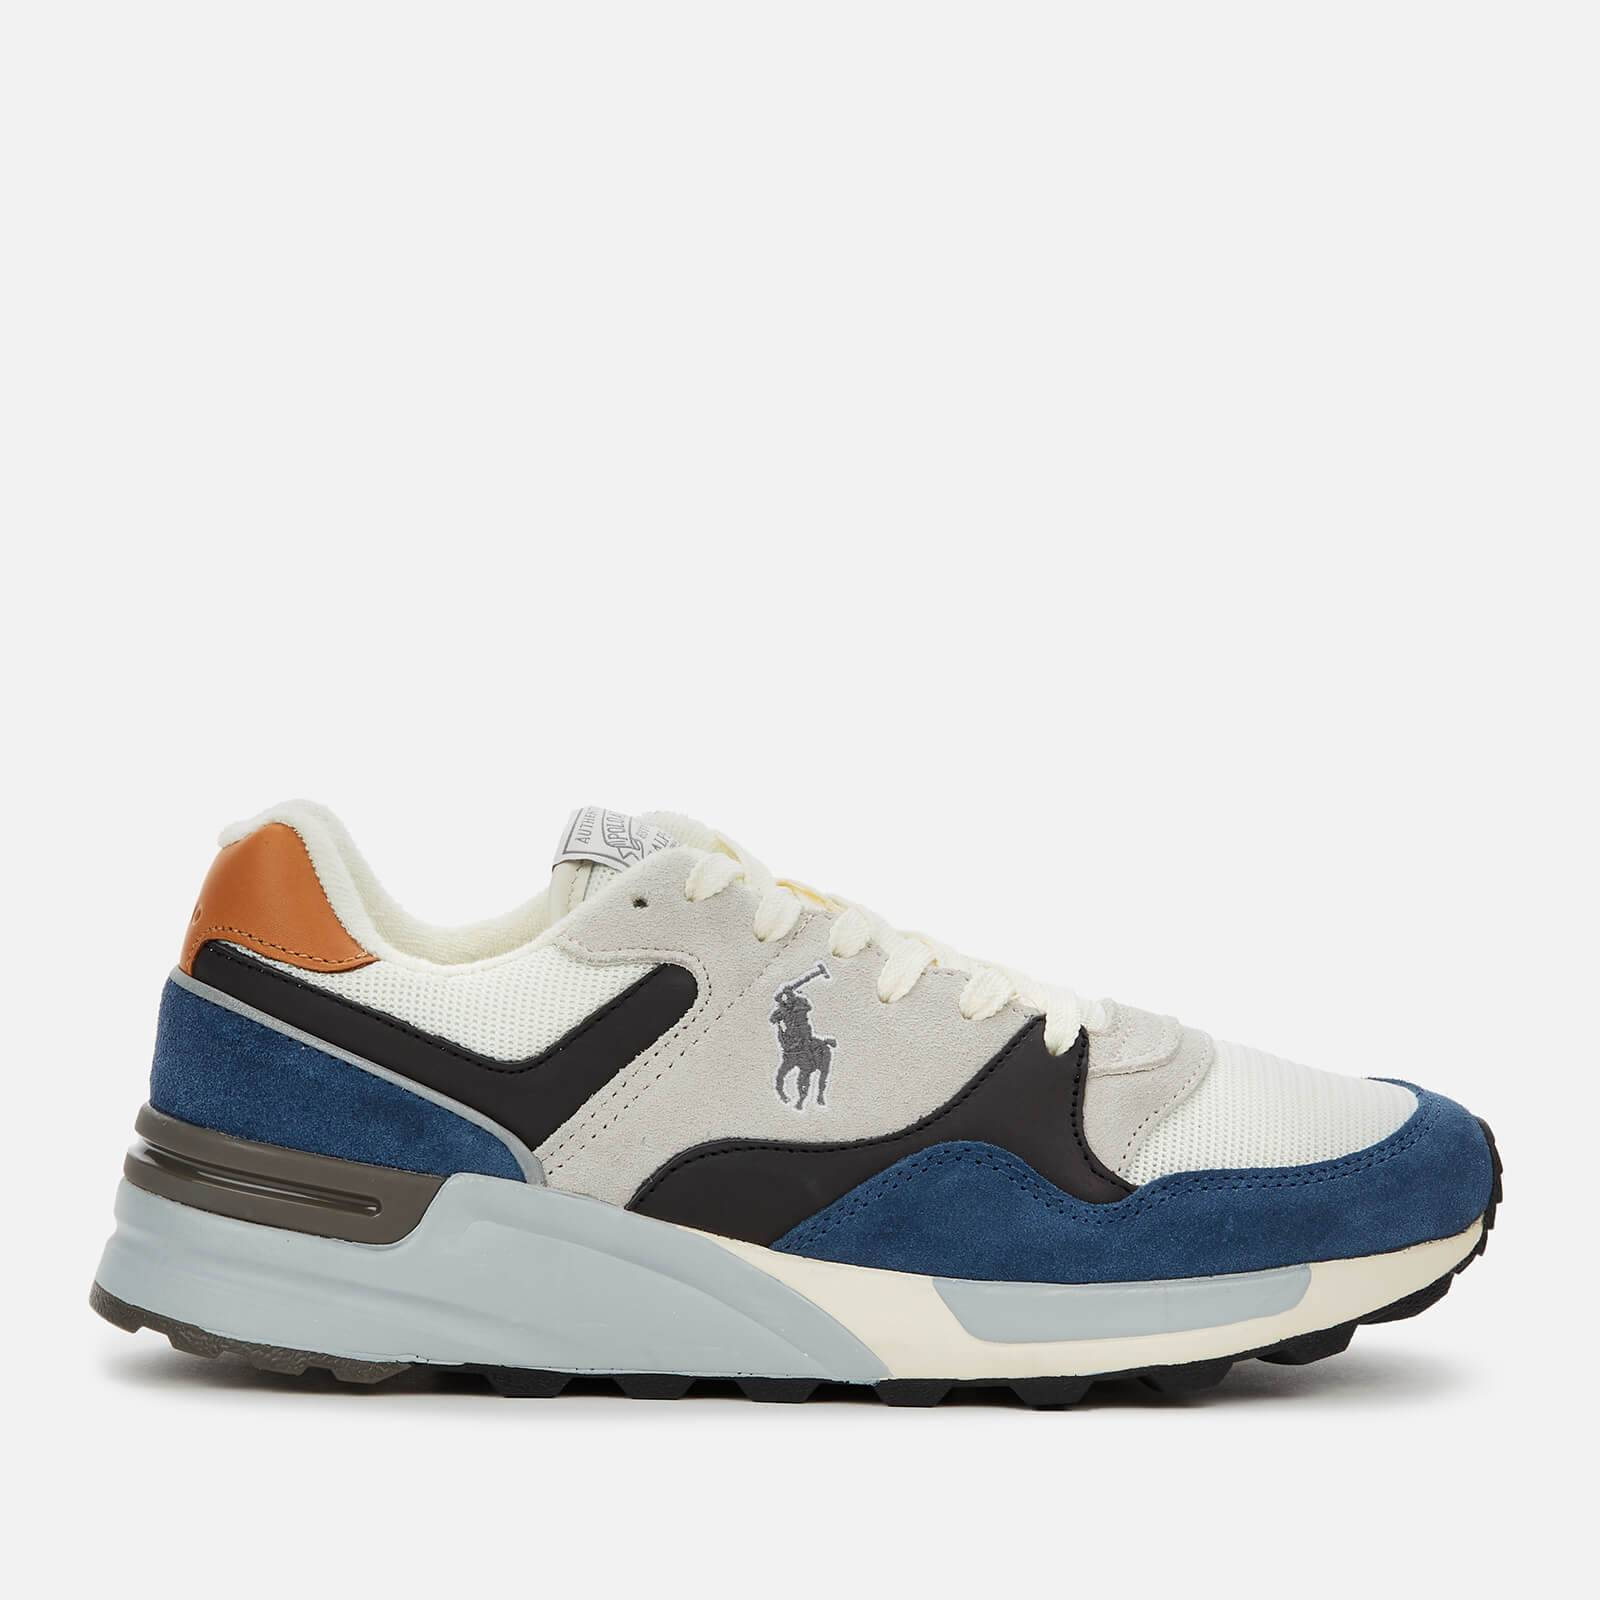 Ralph Lauren Polo Ralph Lauren Men's Trackstar Pony Suede/Leather/Mesh Running Style Trainers - Vintage Indigo/Skyline - UK 9